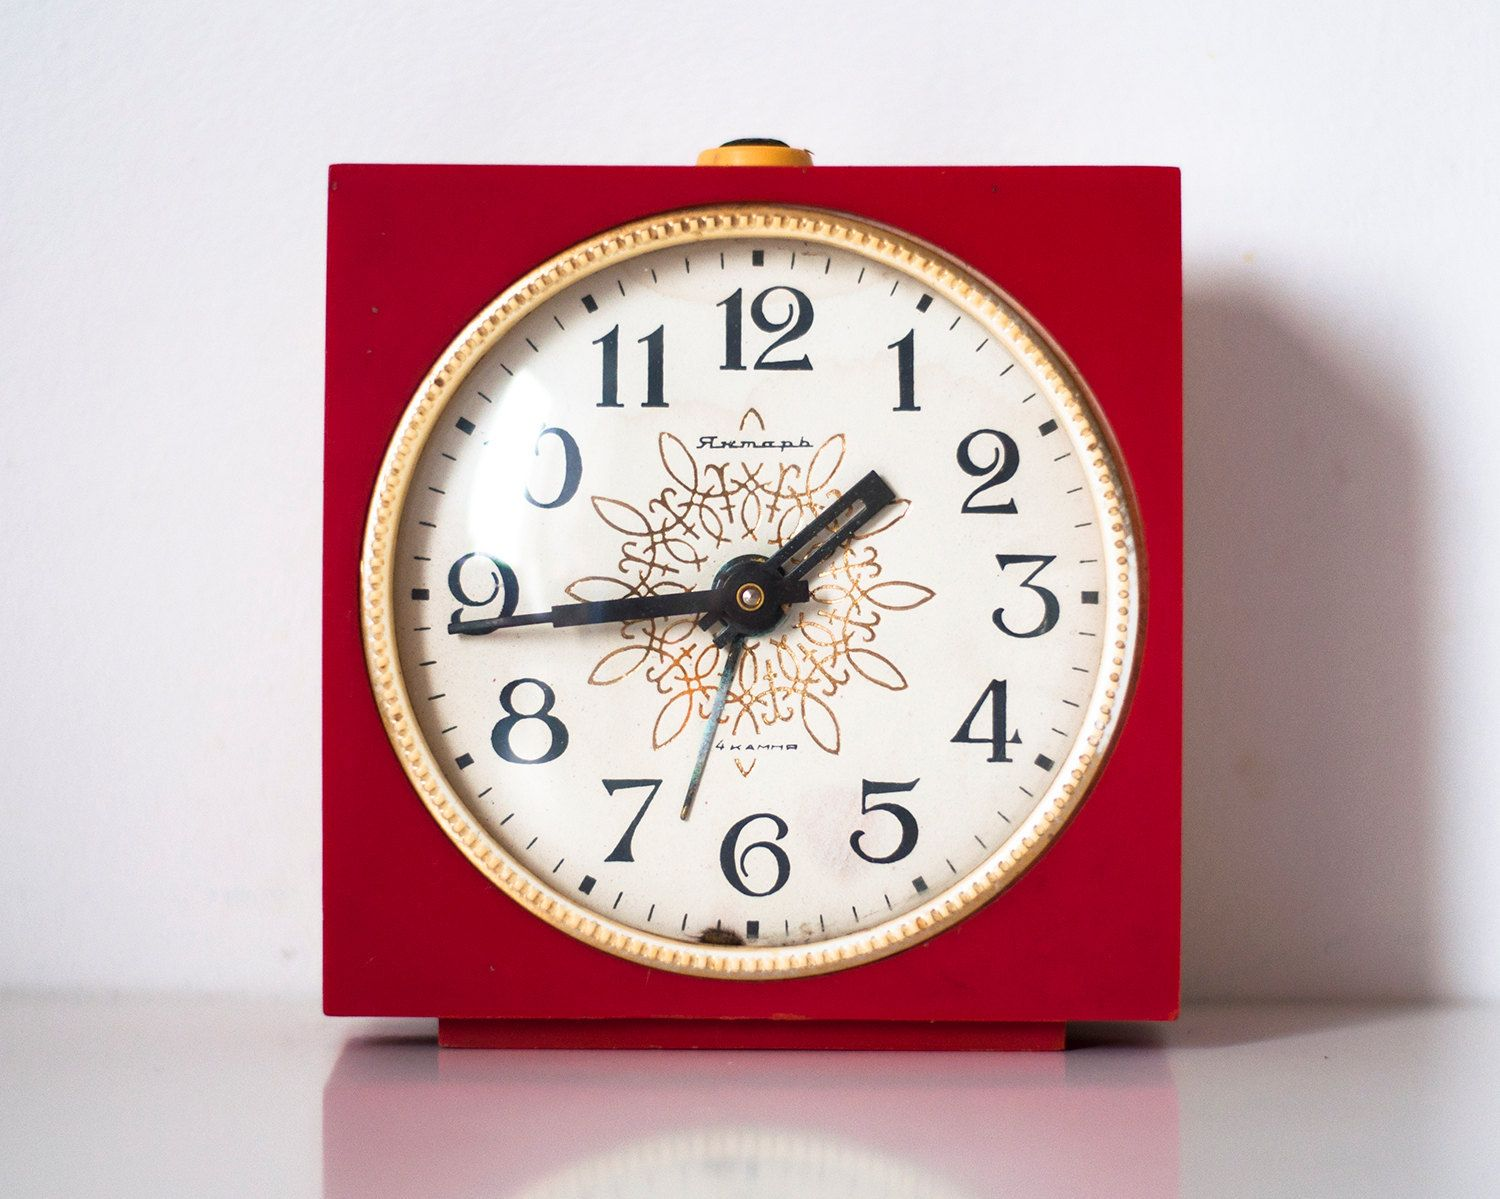 Soviet clock russian clock vintage clock mechanical clock jantar soviet clock russian clock vintage clock mechanical clock jantar working red case with white dial amipublicfo Images